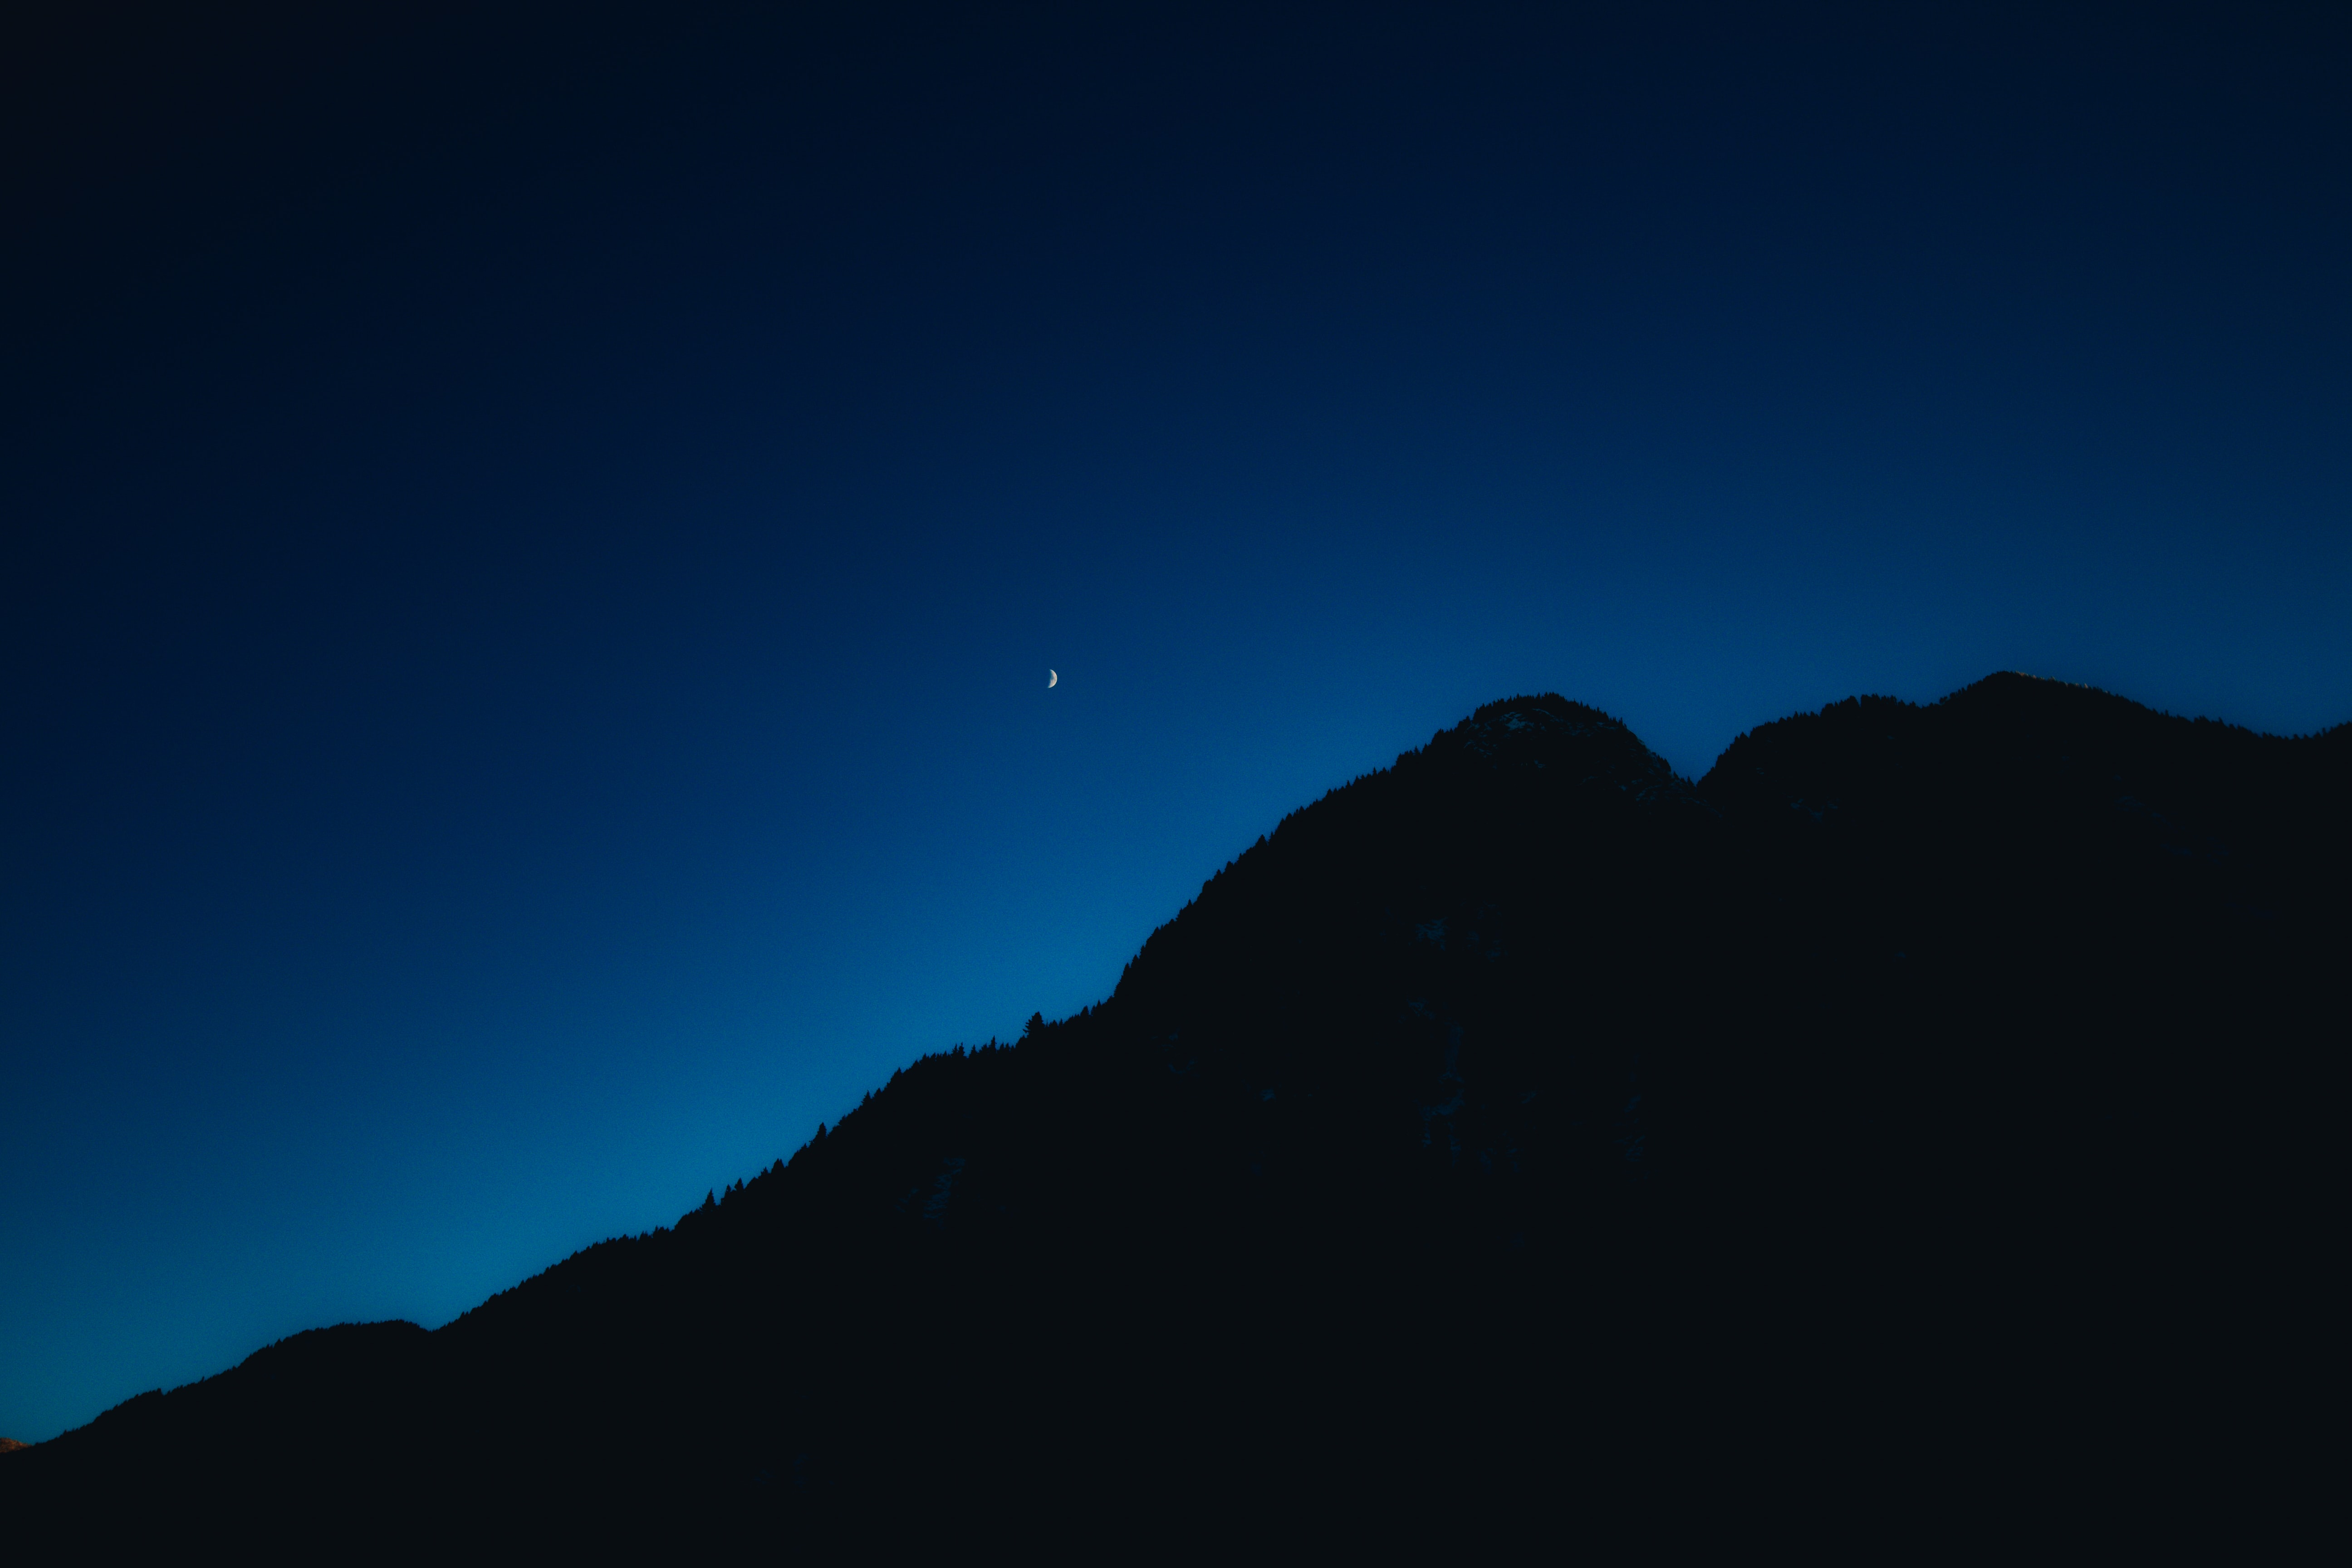 A silhouette of a wooded mountain under an evening sky with a crescent moon